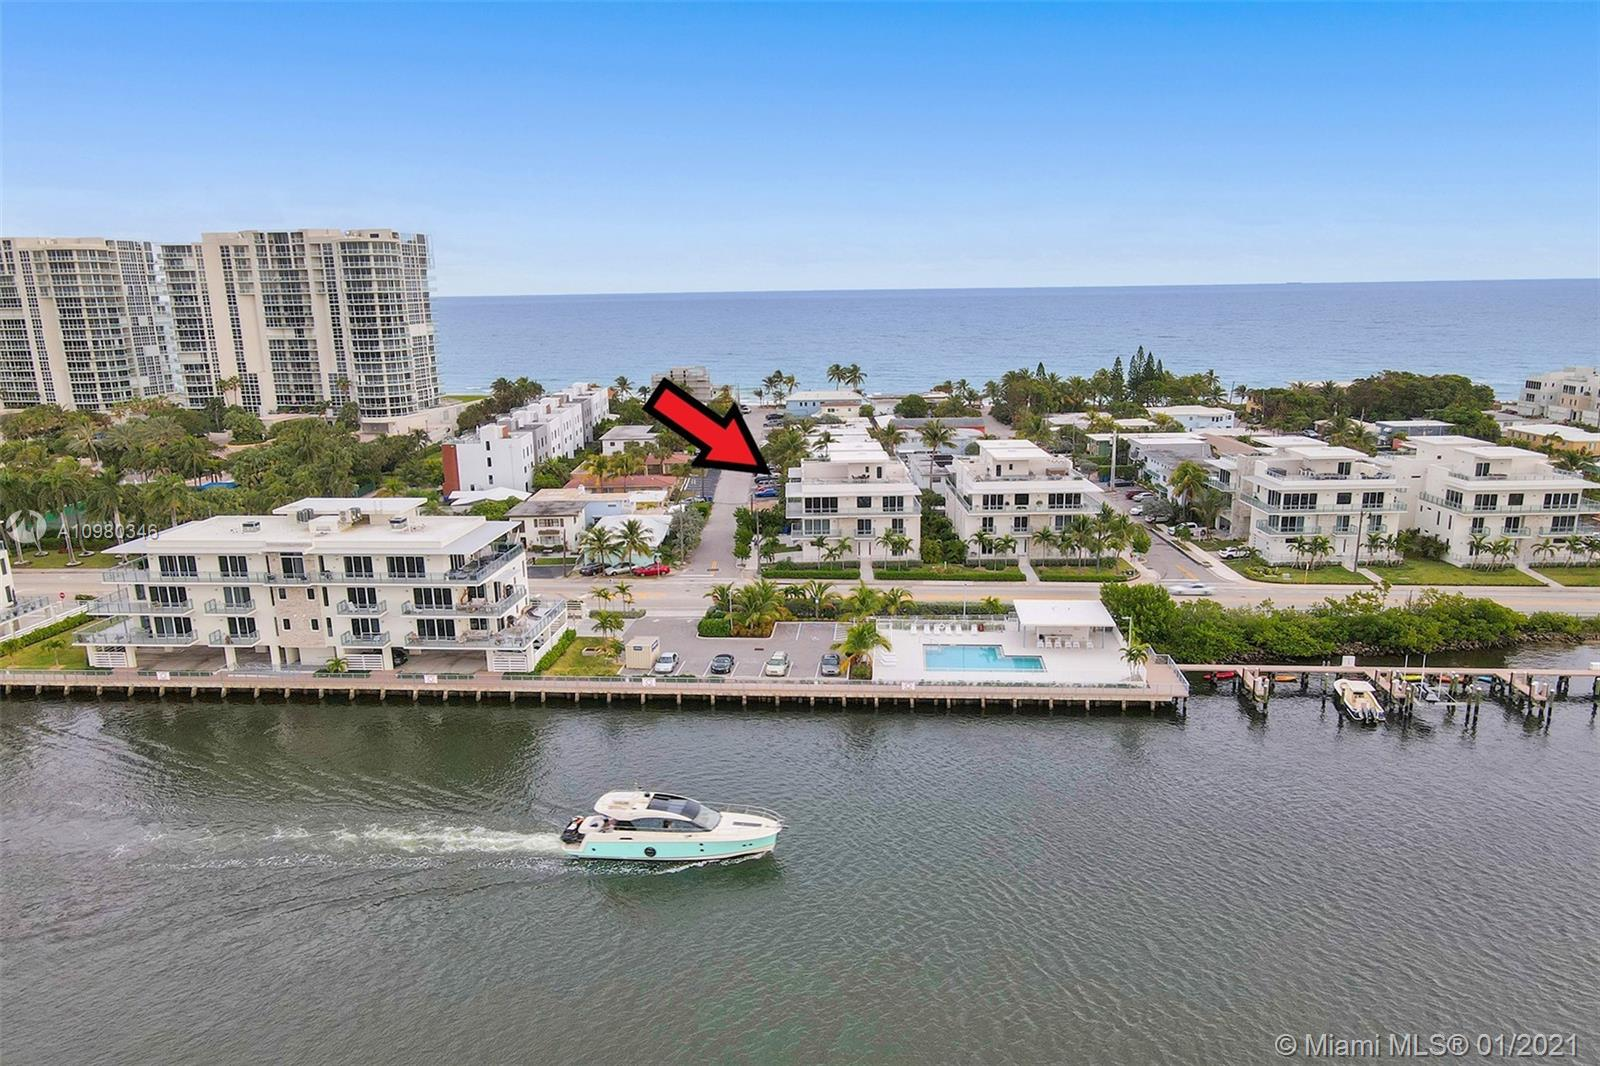 Live in comfort and luxury in your new 4000 sf Beach Home. Beautiful wide sunny beaches just steps away. This is truly top a of the line property with a private elevator, porcelain floors, custom designed kitchen with Wolf & Sub Zero appliances.  A marvel of contemporary architecture, the most beautifully decorated 4 bedrooms, 4 bath house. The level of sophistication in the choice of materials, textures and colors is unparalleled. Spacious open living area. Watch the boats go by or the sun rise from set your 1200 sf roof top deck with Ocean to Intracoastal views.  This is a one of a kind property for Hollywood Beach and is in perfect move in condition available for immediate occupancy.